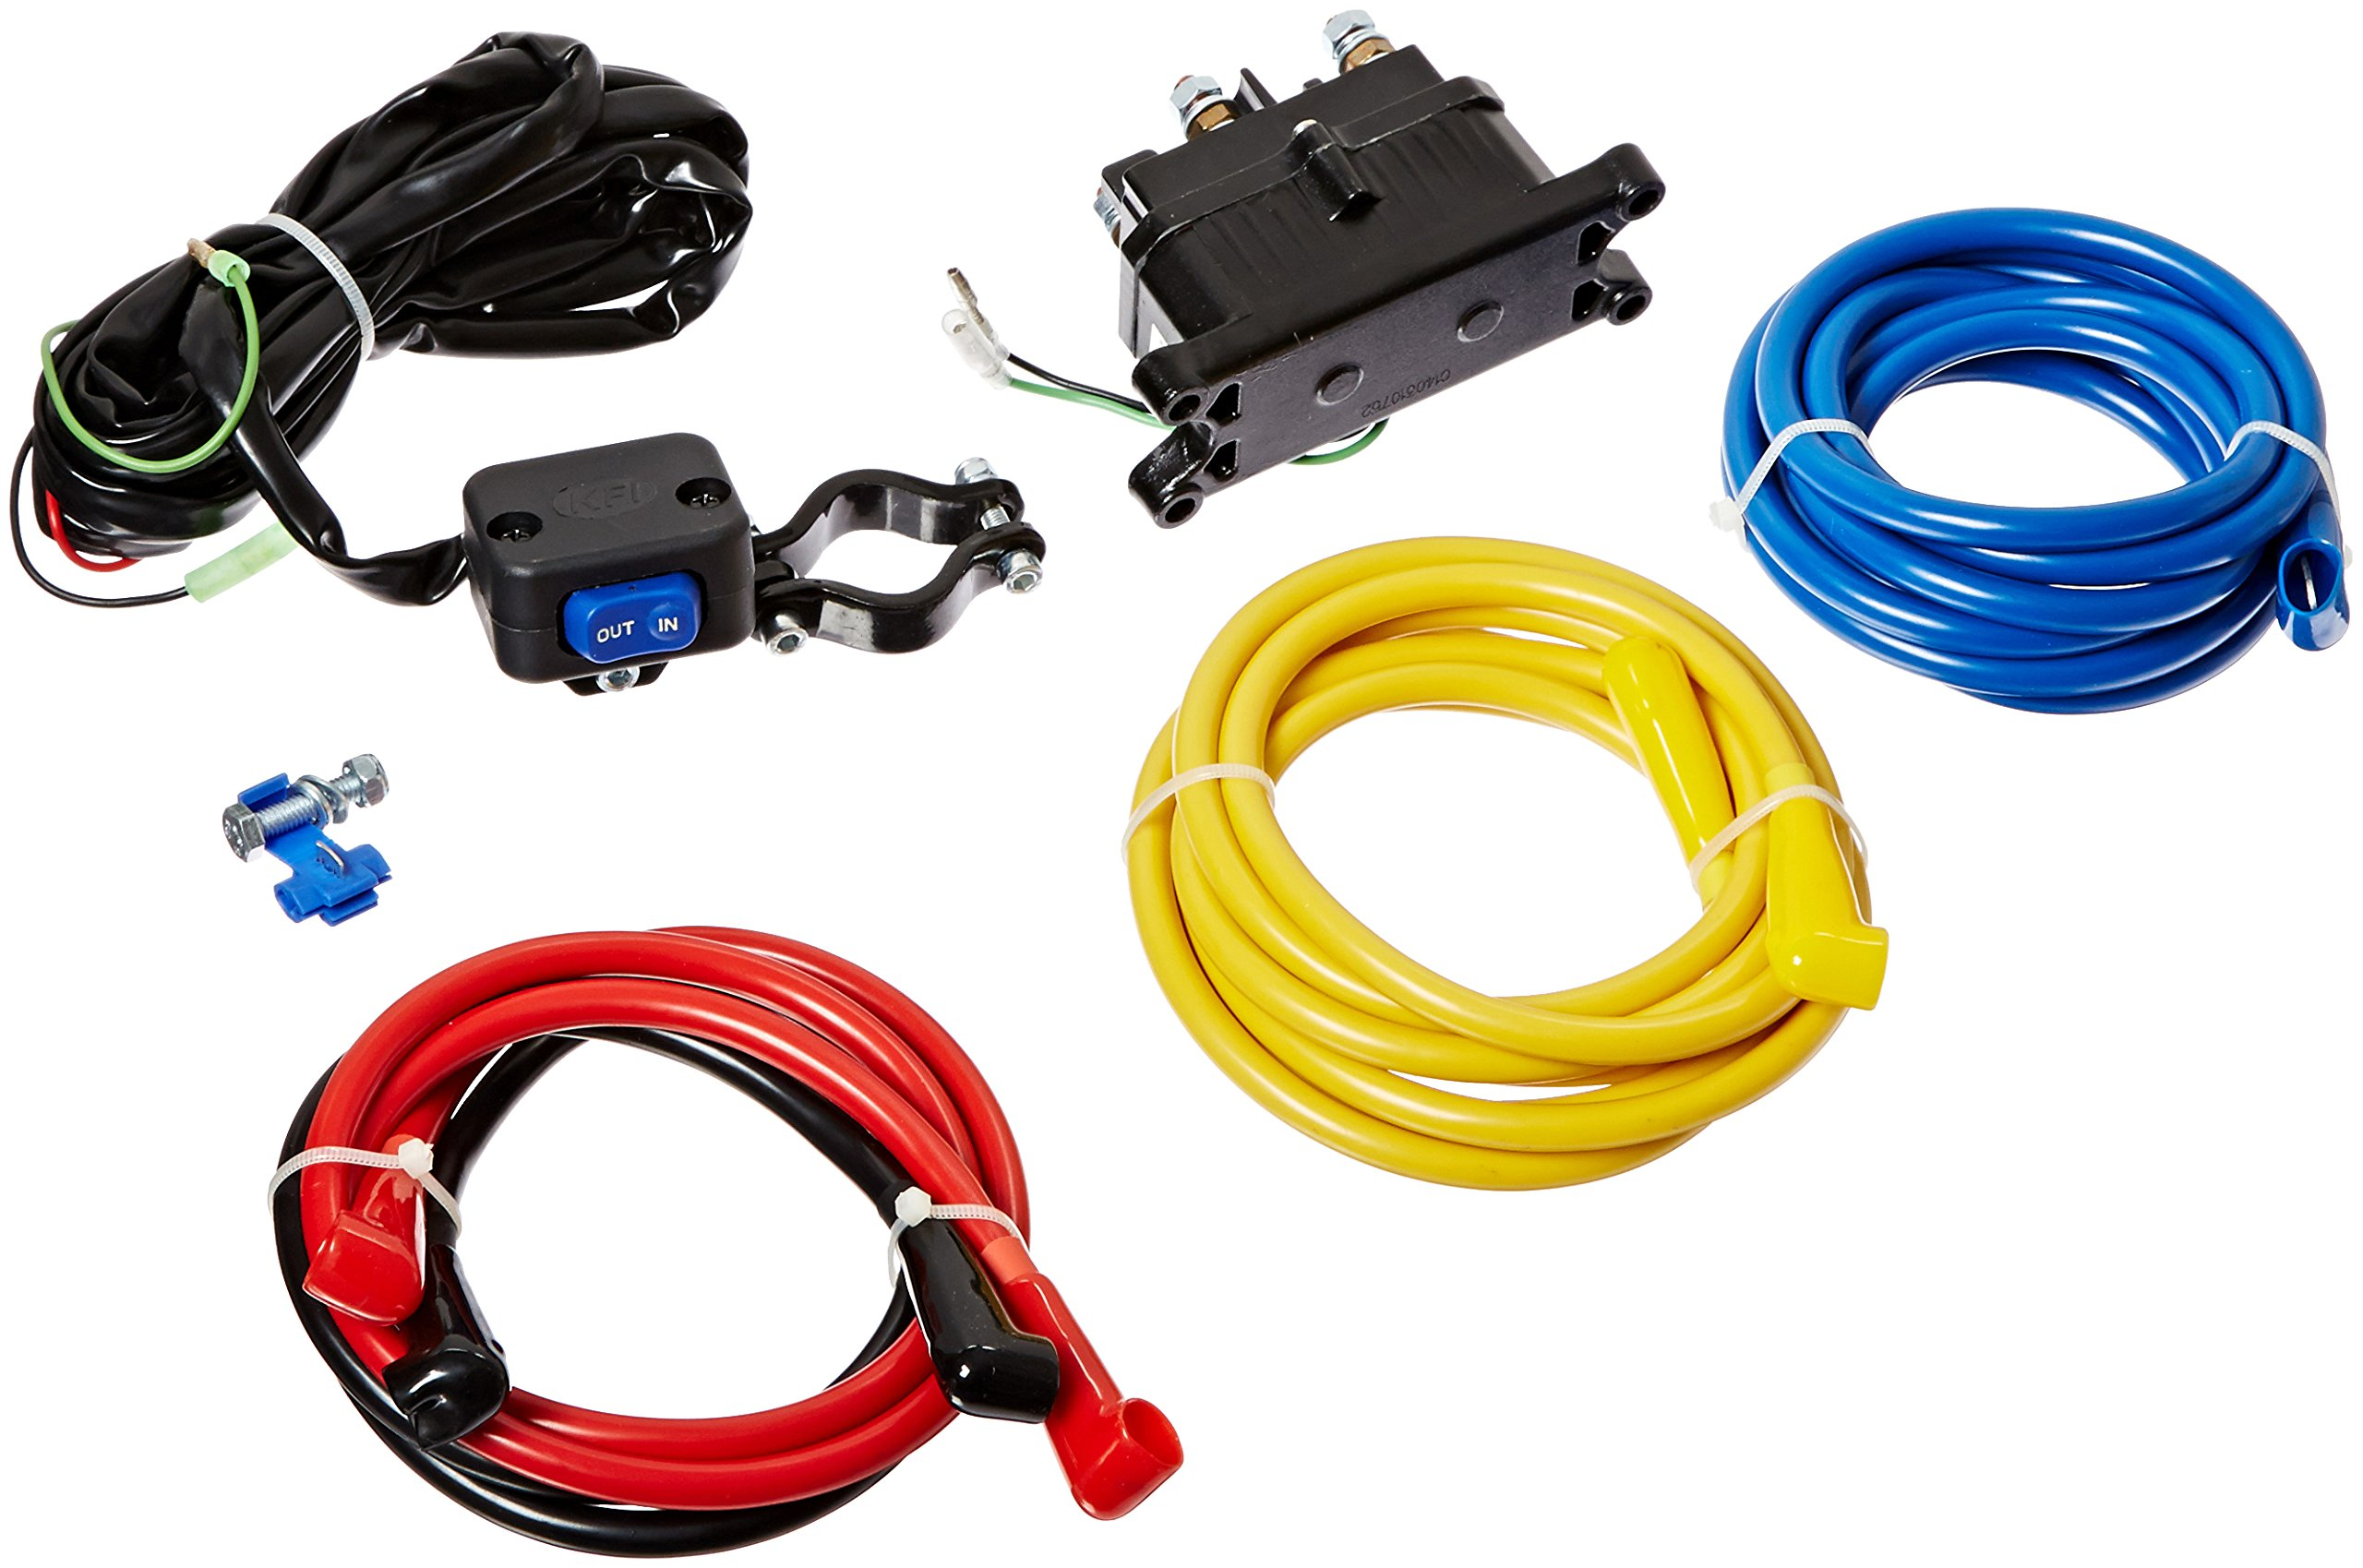 KFI Products ATV-WK Universal 12V Wiring Kit